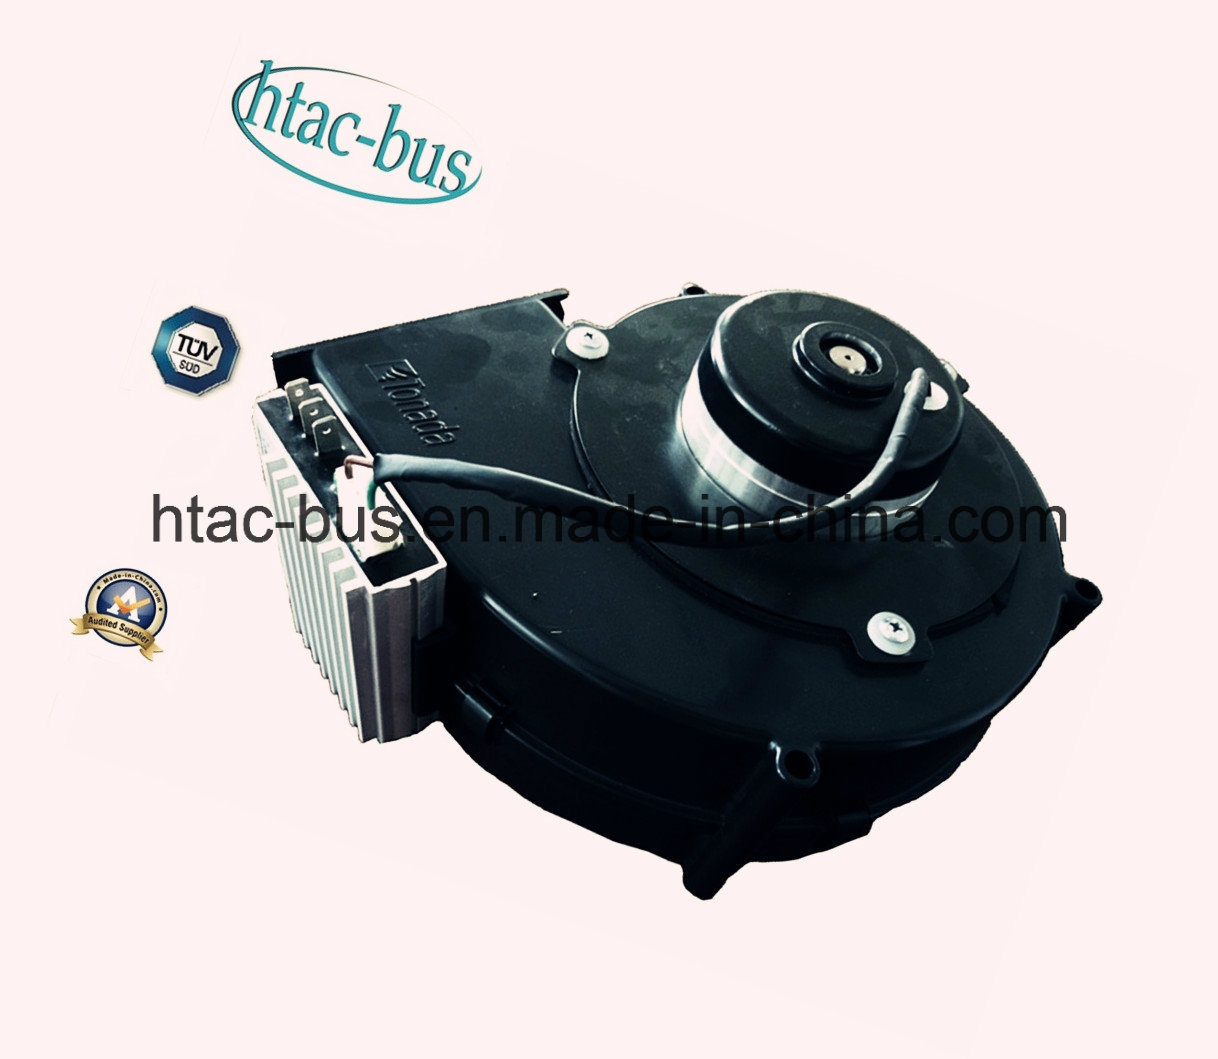 China Supplier Bus A/C Hispacold Brushless Blower 5300066, 24V